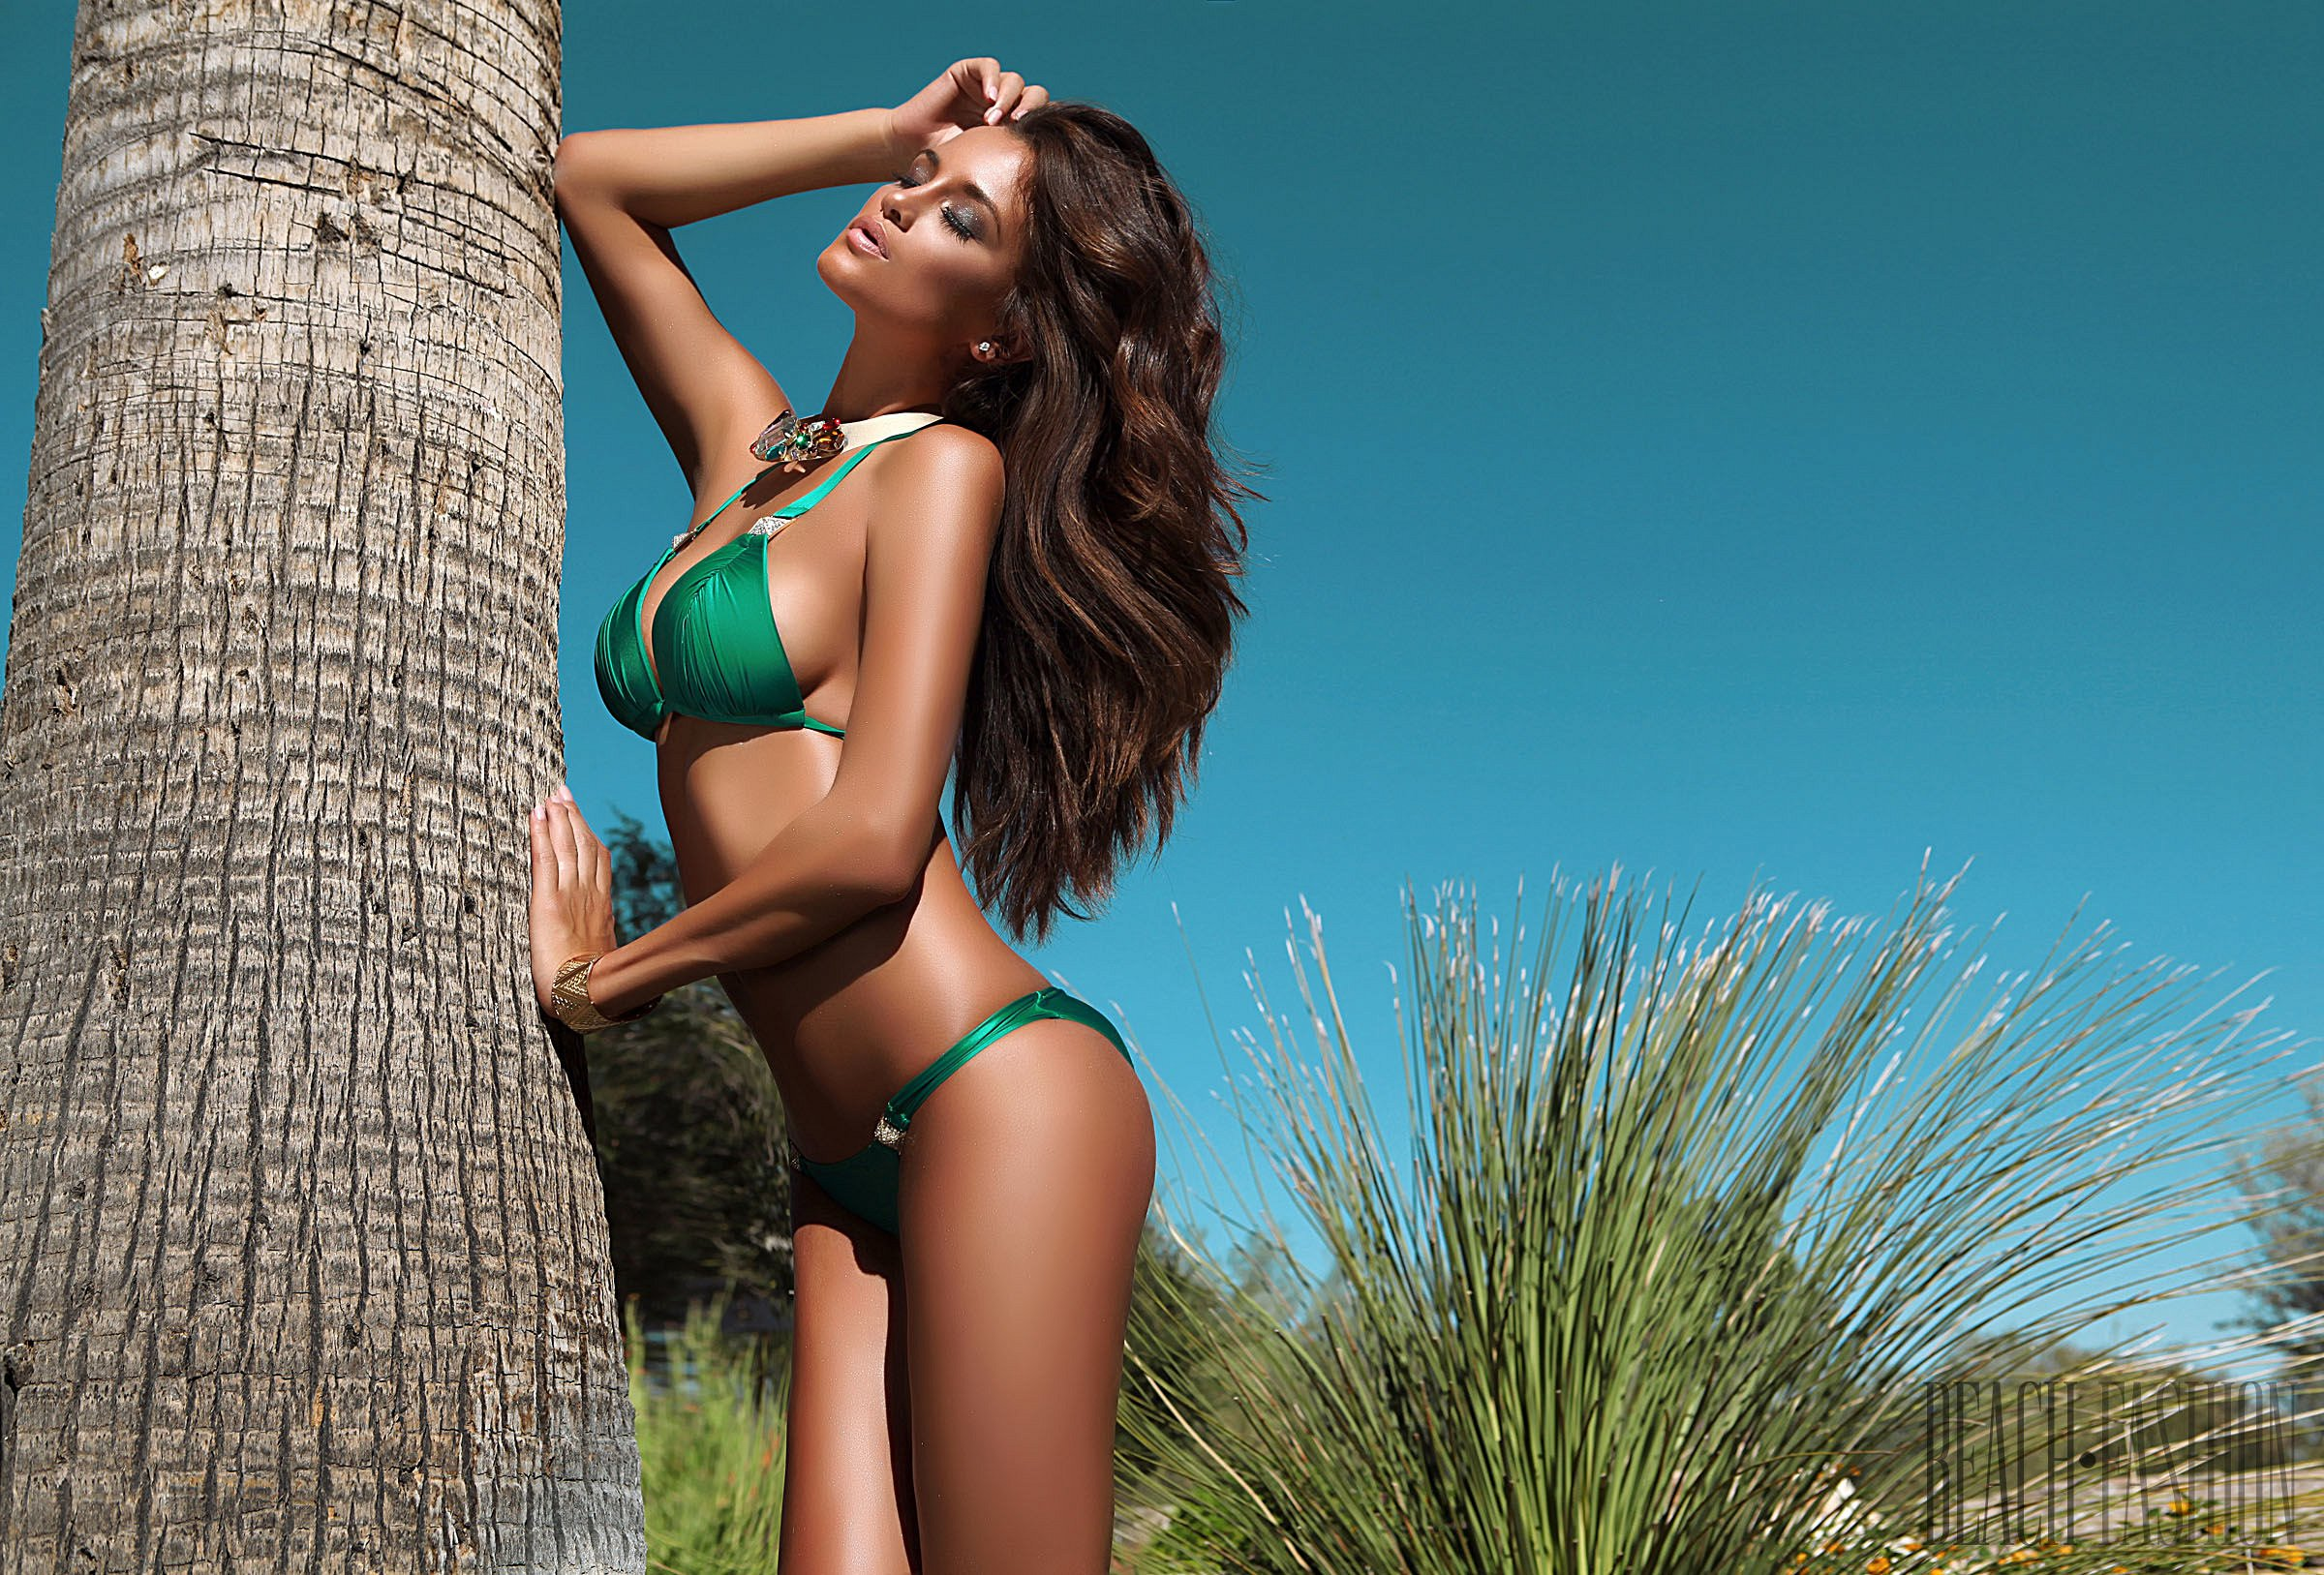 Green bikini model